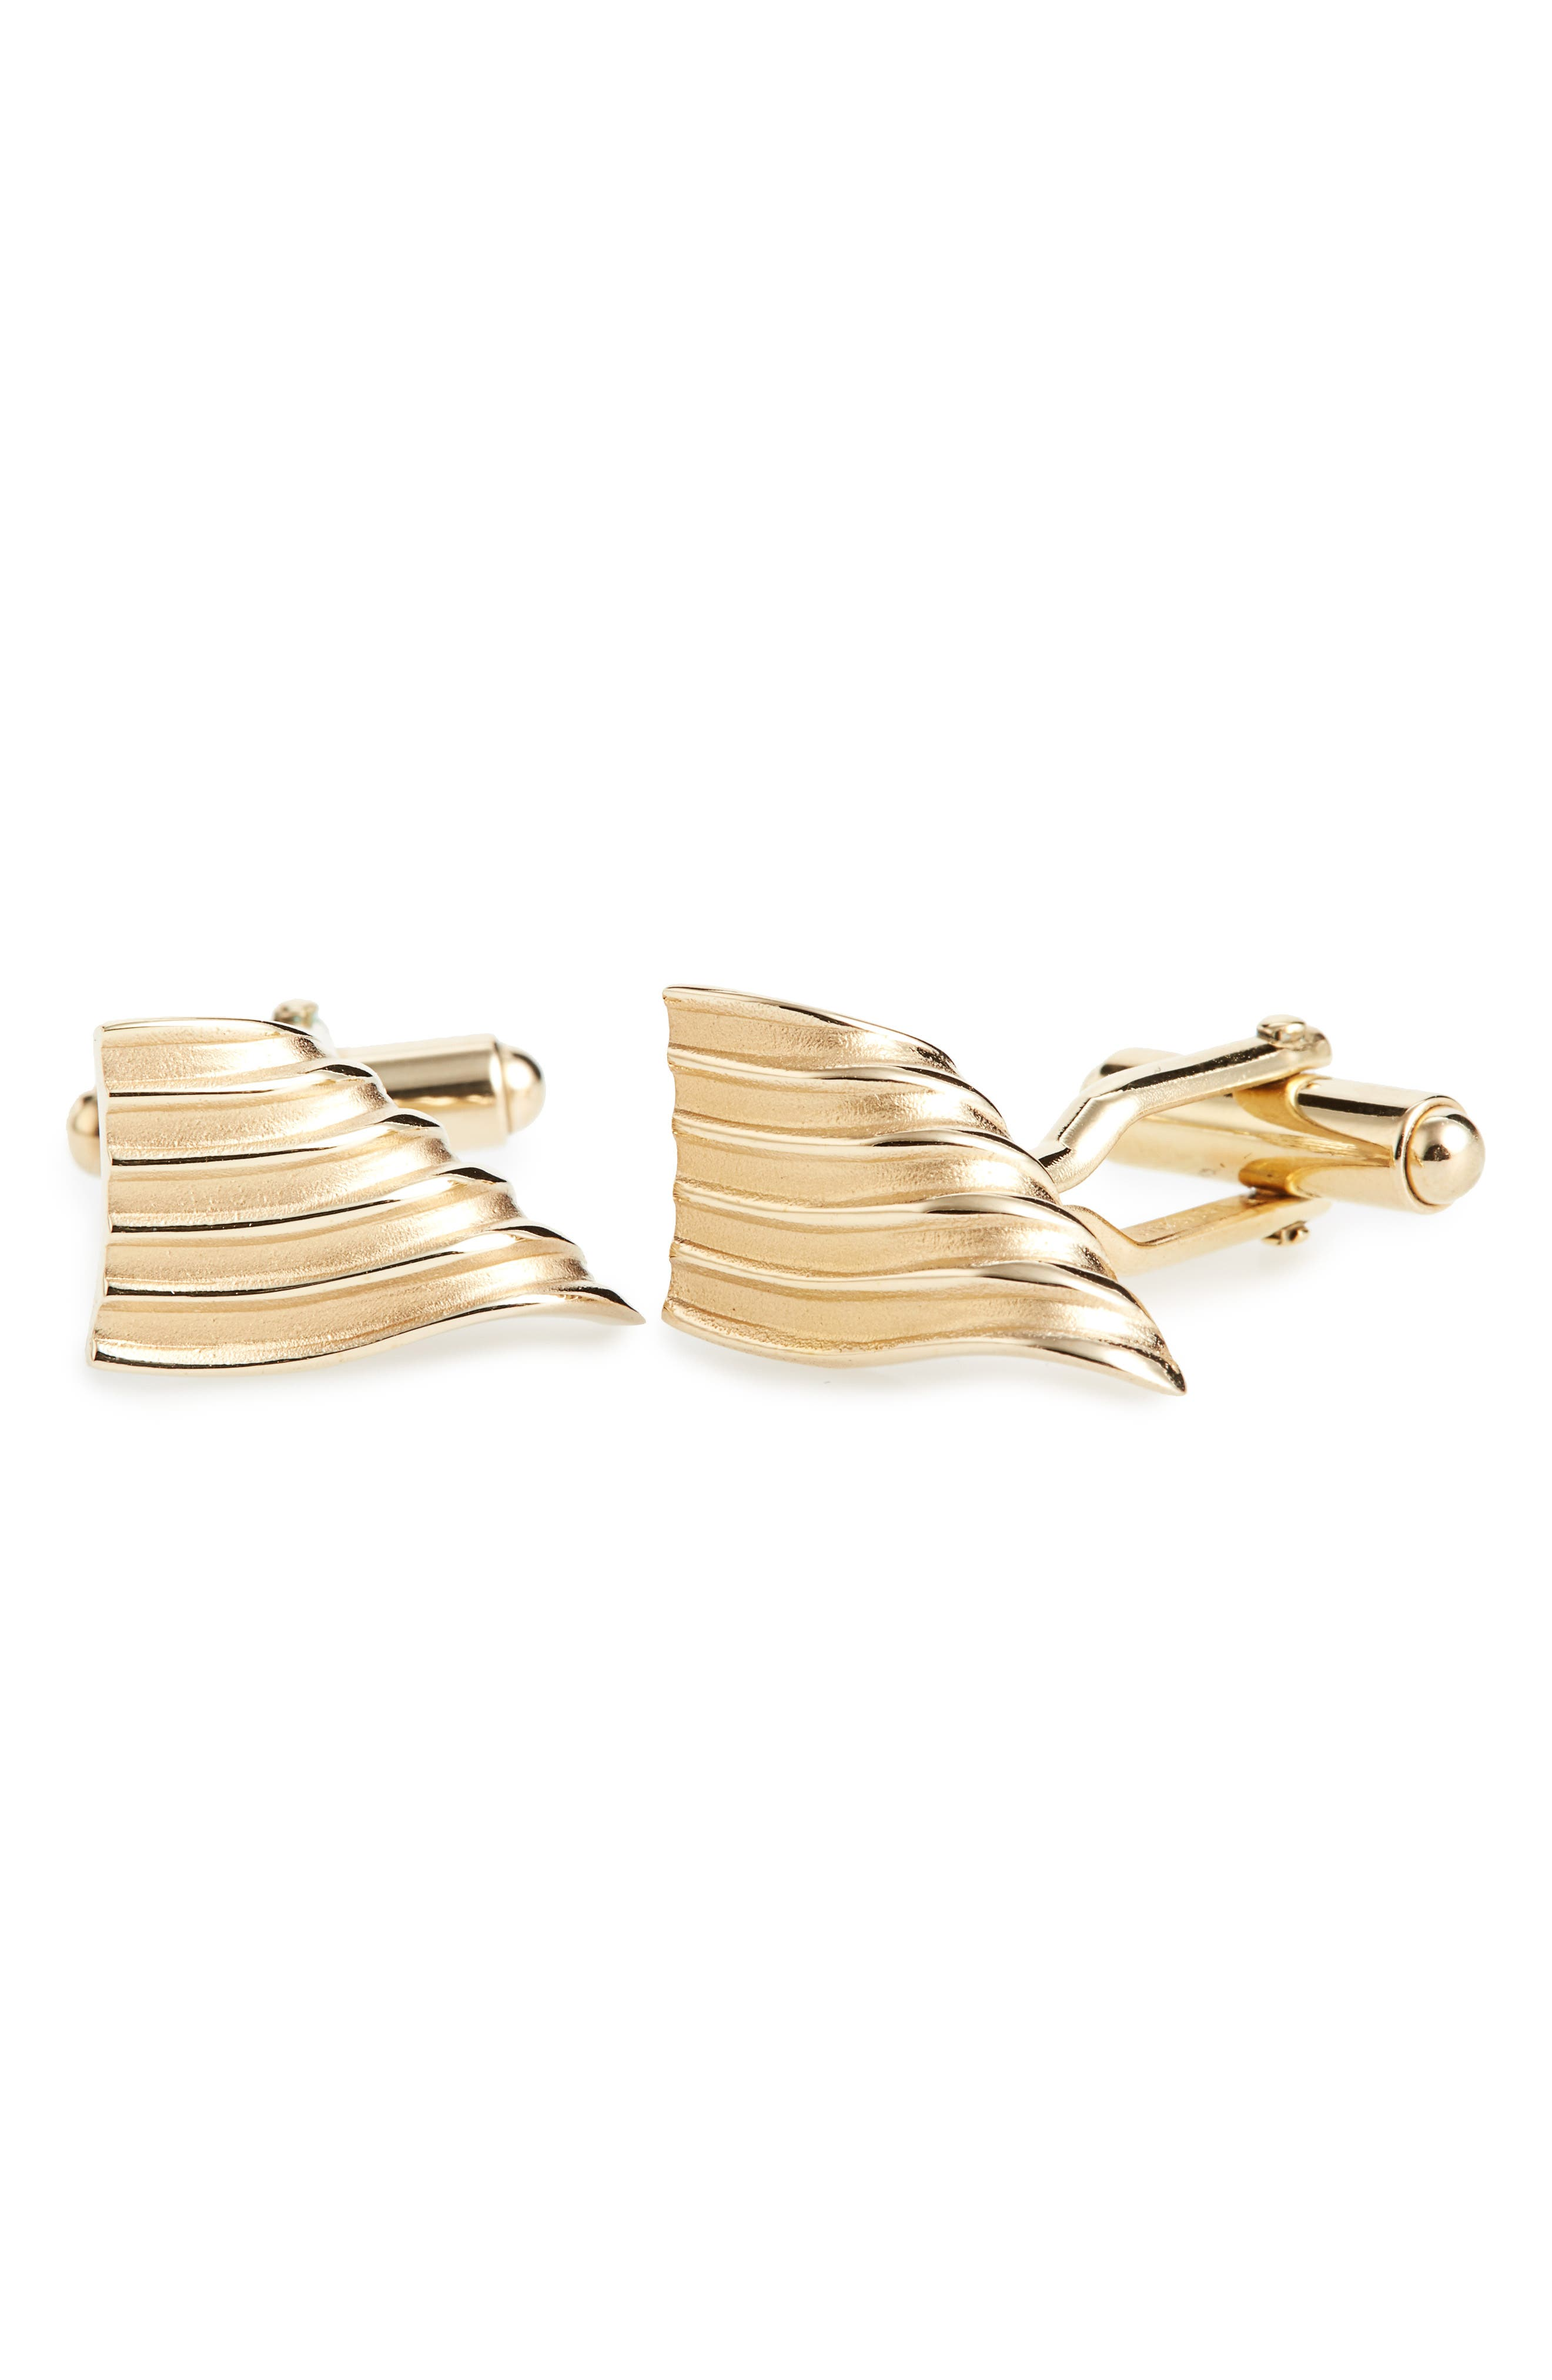 Lanvin Curved & Grooved Cuff Links